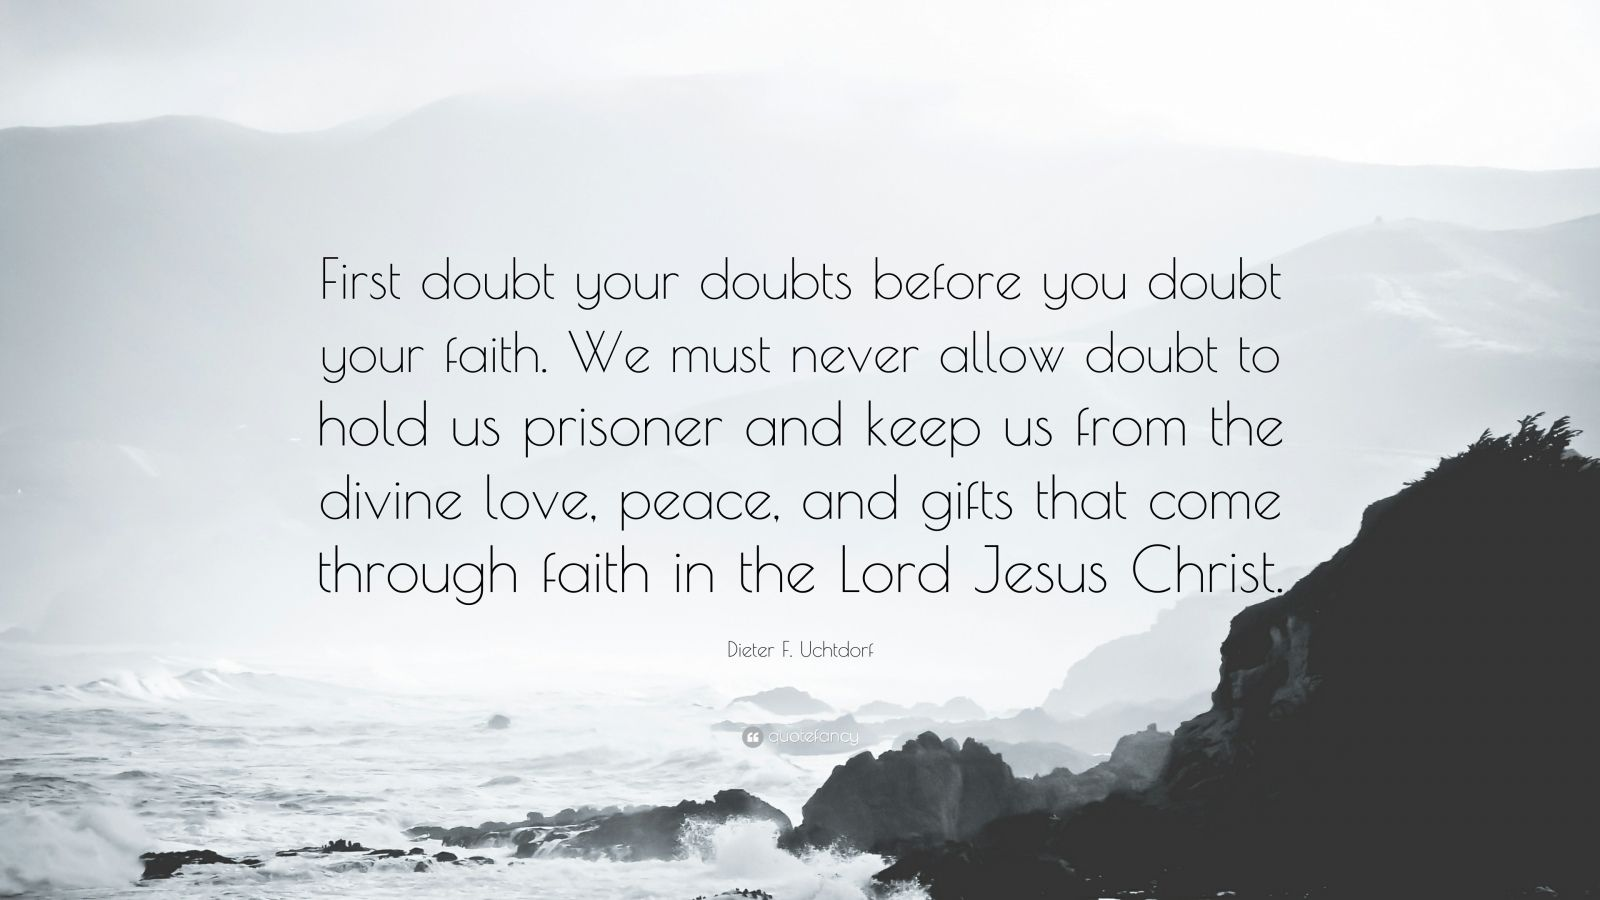 "Dieter F. Uchtdorf Quote: ""First doubt your doubts before you doubt your faith. We must never allow doubt to hold us prisoner and keep us from the divine love, peace, and gifts that come through faith in the Lord Jesus Christ."""